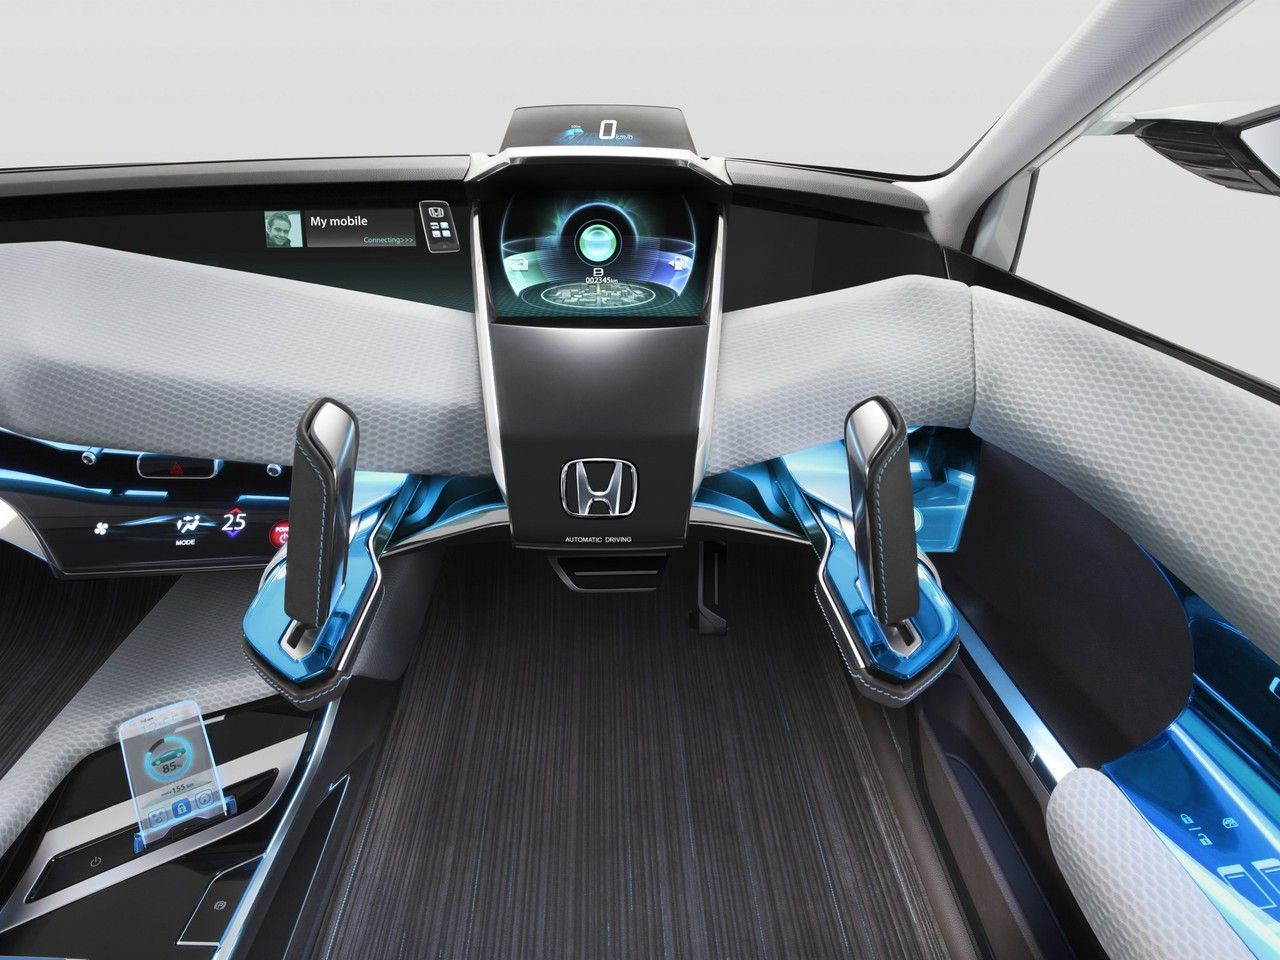 2011 honda ac x concept the future has arrived carinteriors interplanetary party police. Black Bedroom Furniture Sets. Home Design Ideas